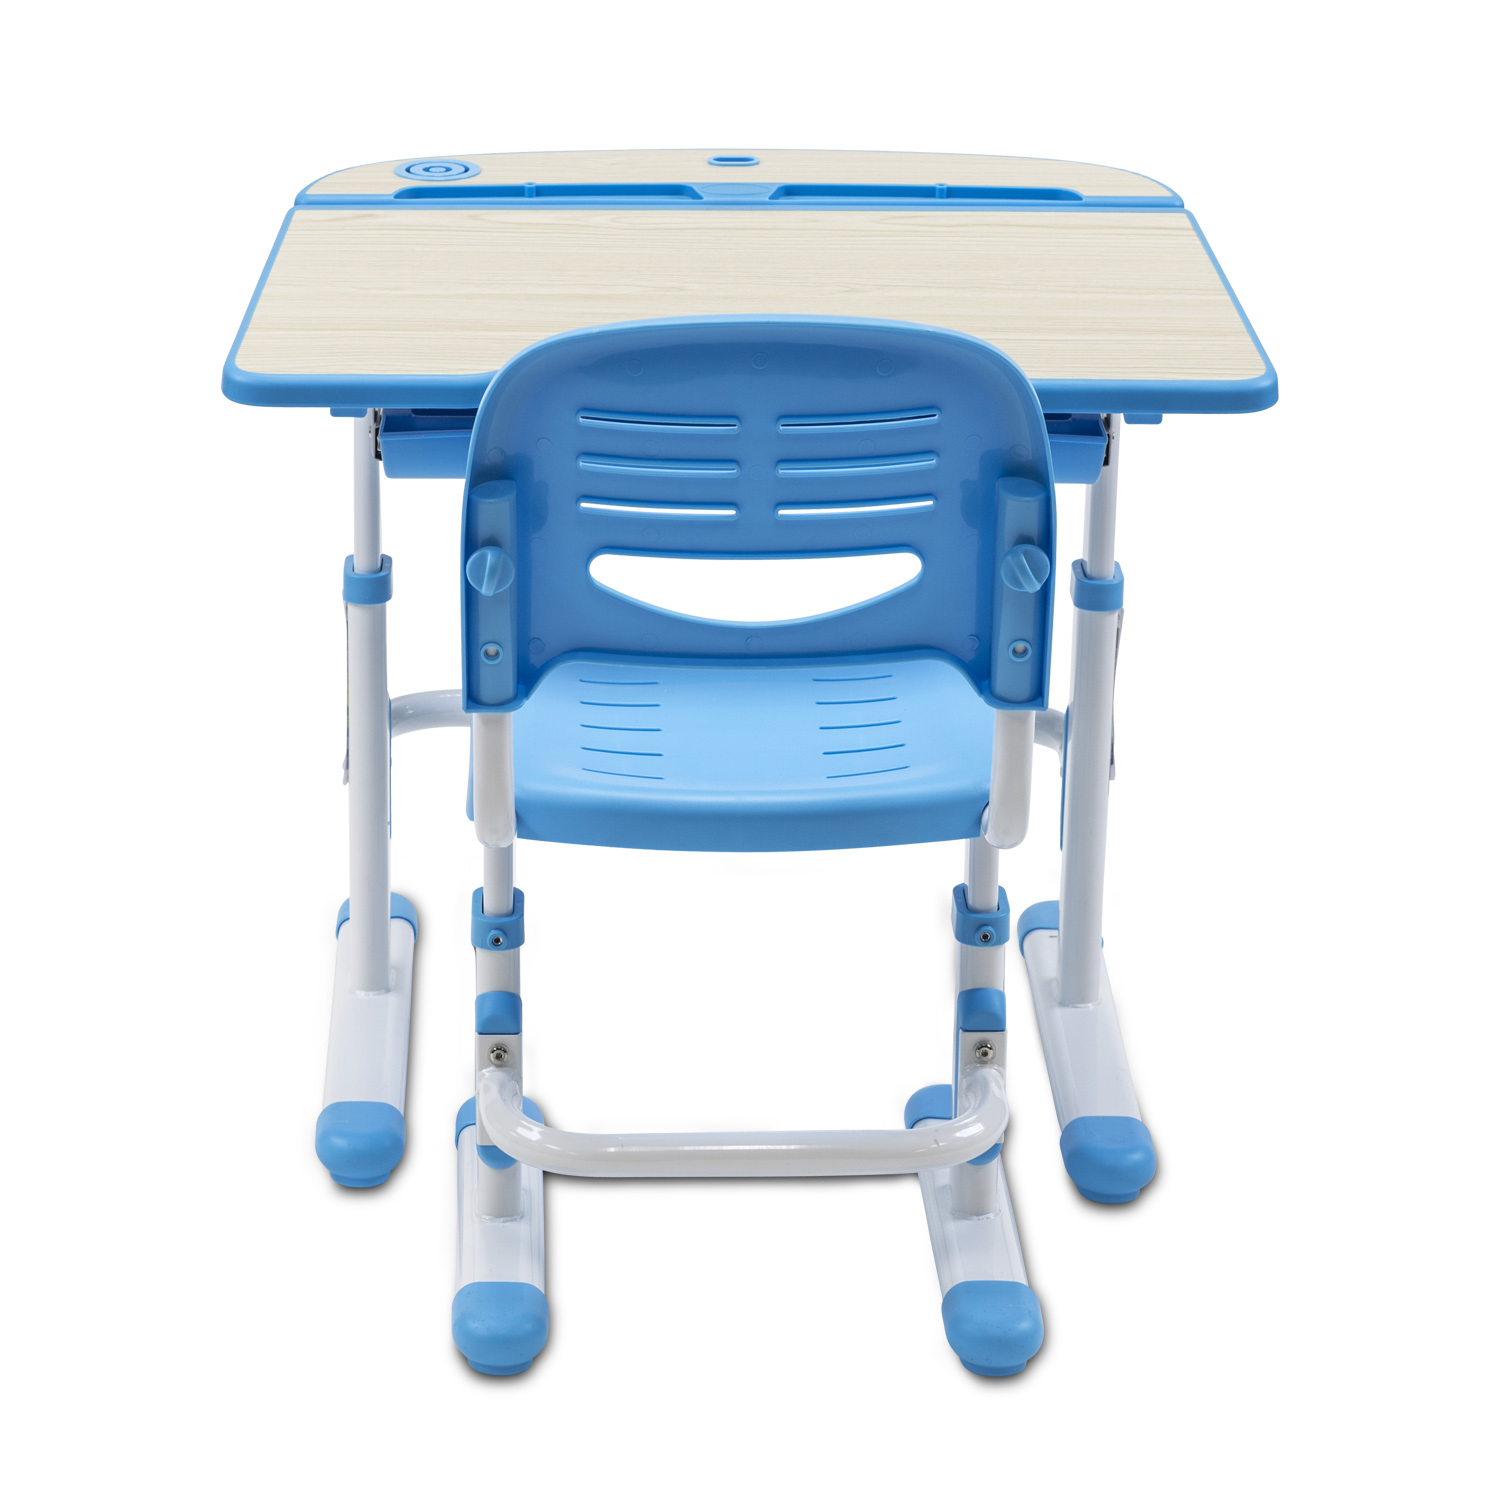 Mount It Childrens Desk And Chair Set Kids School Workstation Blue Mi 10102 Com